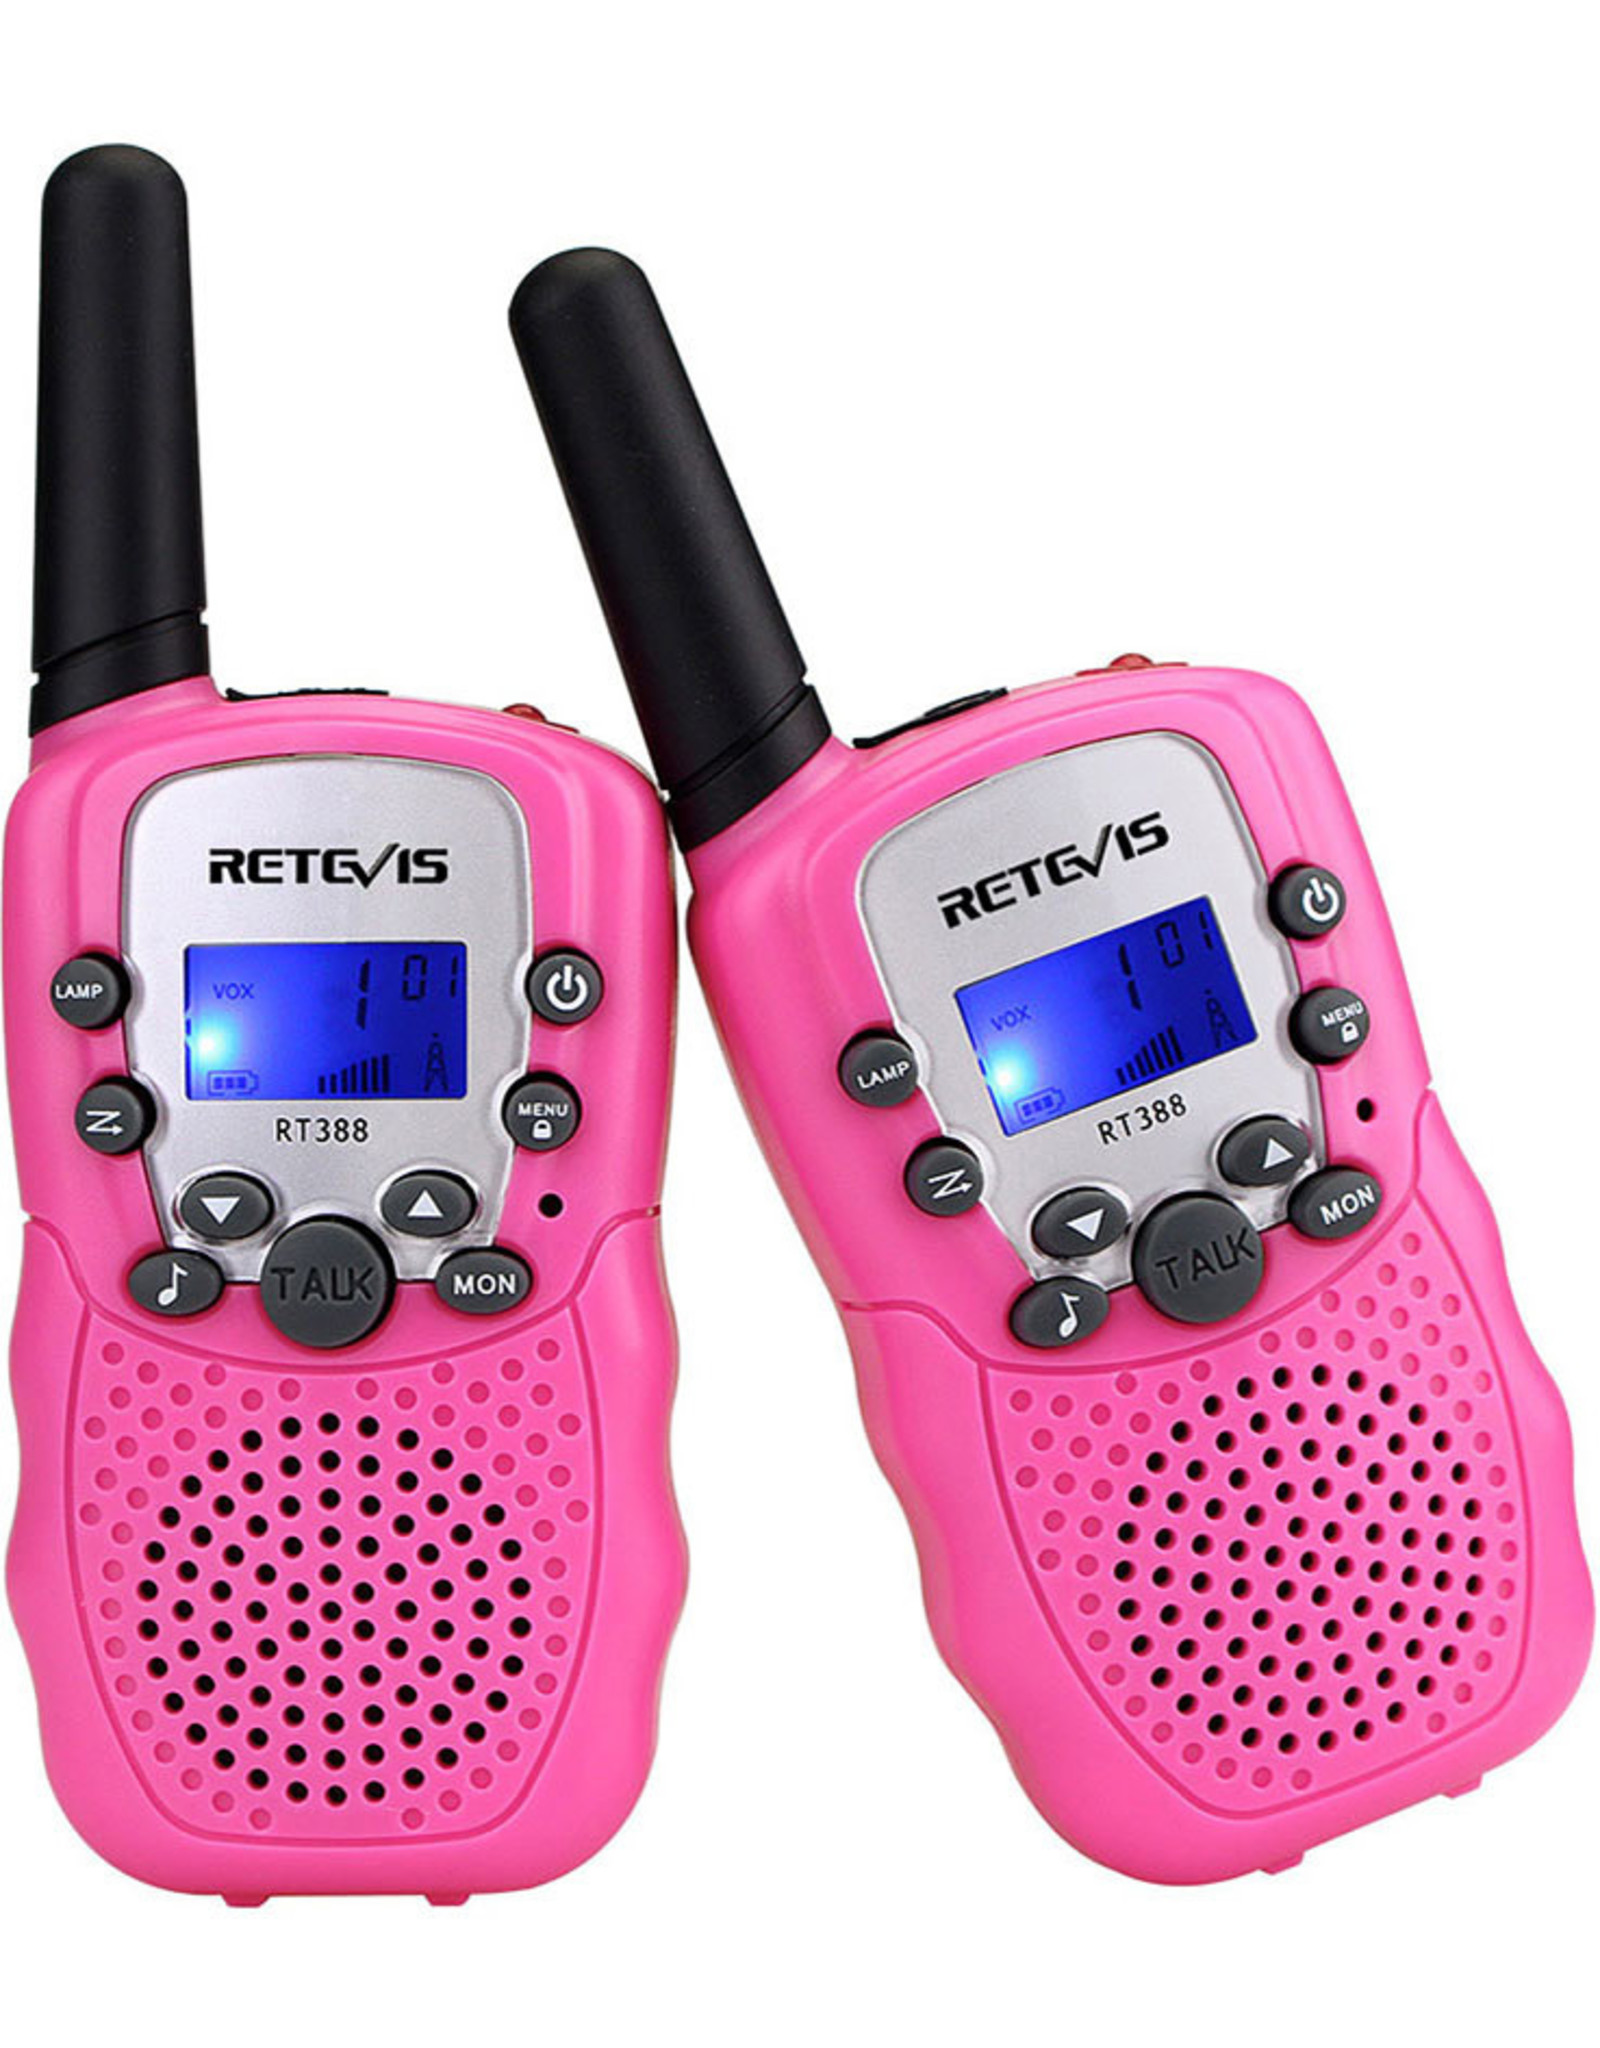 Retevis Walkie Talkies with Flashlight - Pink